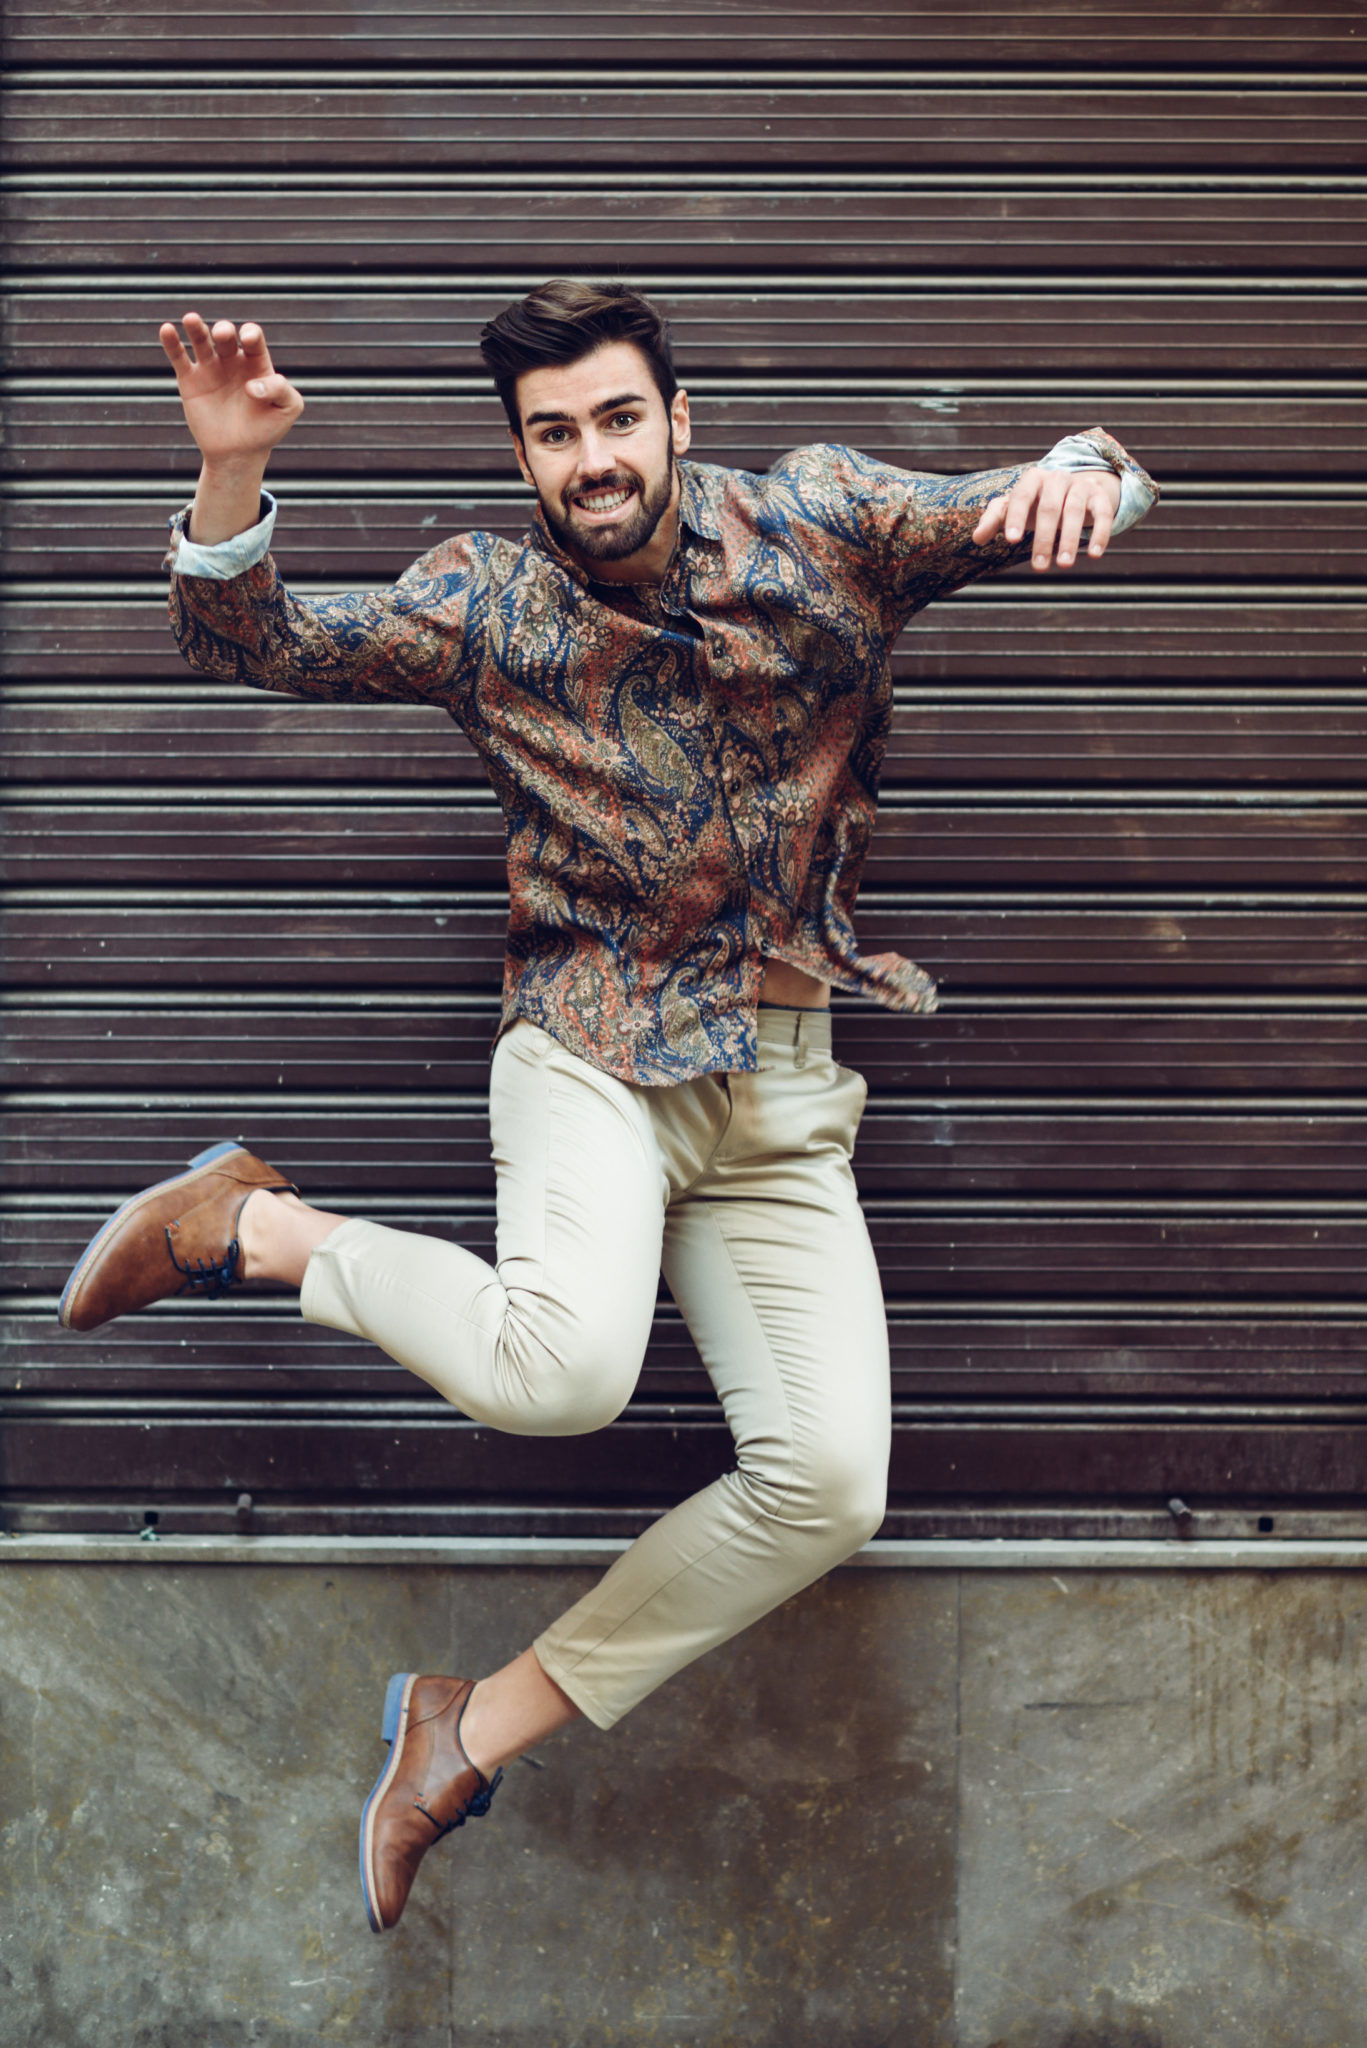 husky smith direct to consumer london uk shoes boots Young bearded man jumping in urban background with open arms huskandsmith